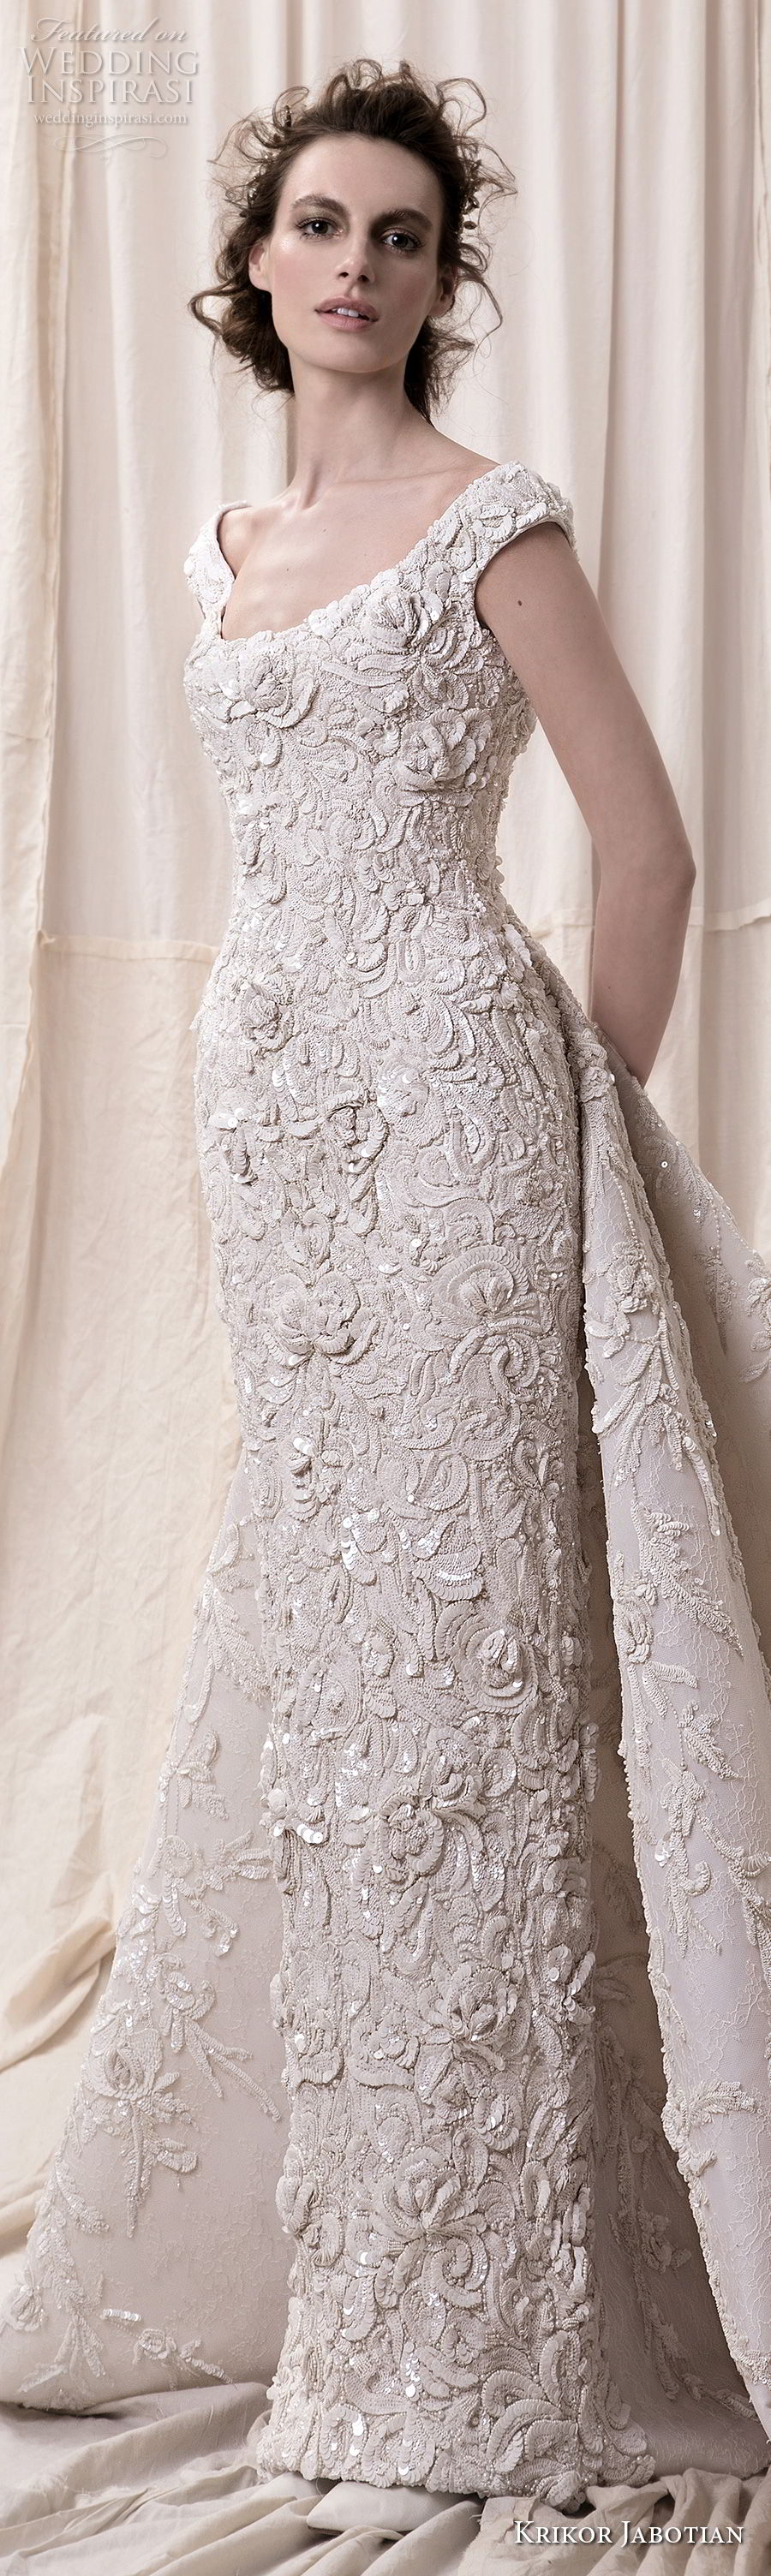 krikor jabotian spring 2018 bridal cap sleeves scoop neckline full embellishment elegant glamorous sheath wedding dress a line overskirt chapel train (10) lv